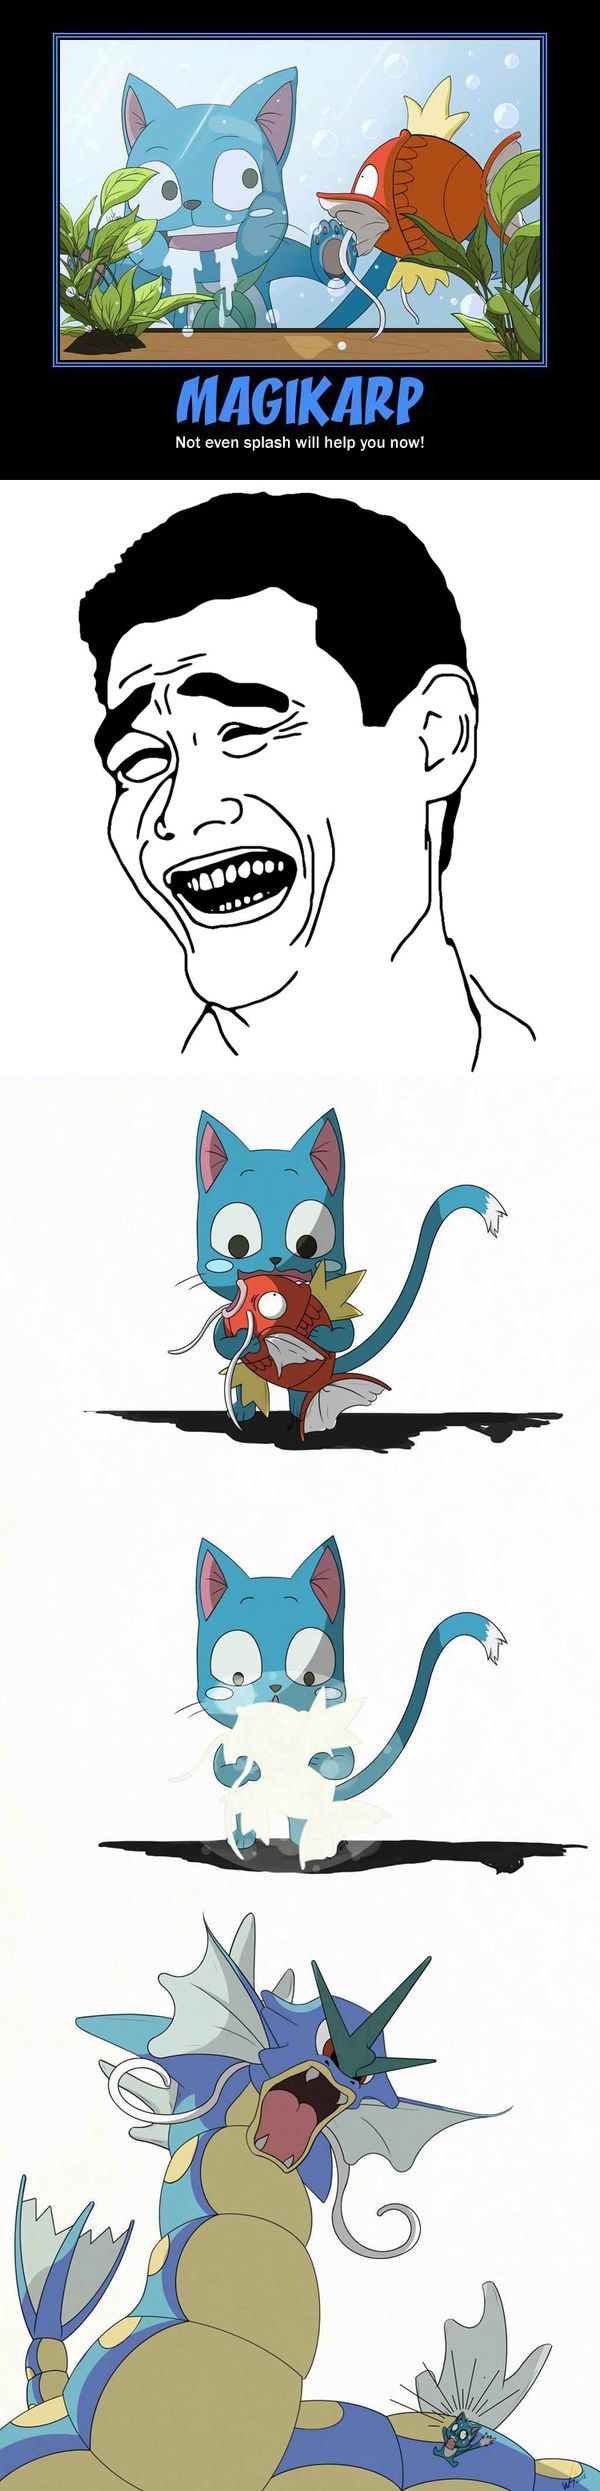 Awwww poor happy!!!! He will not get his Magicarp fairy tail and Pokemon crossover.